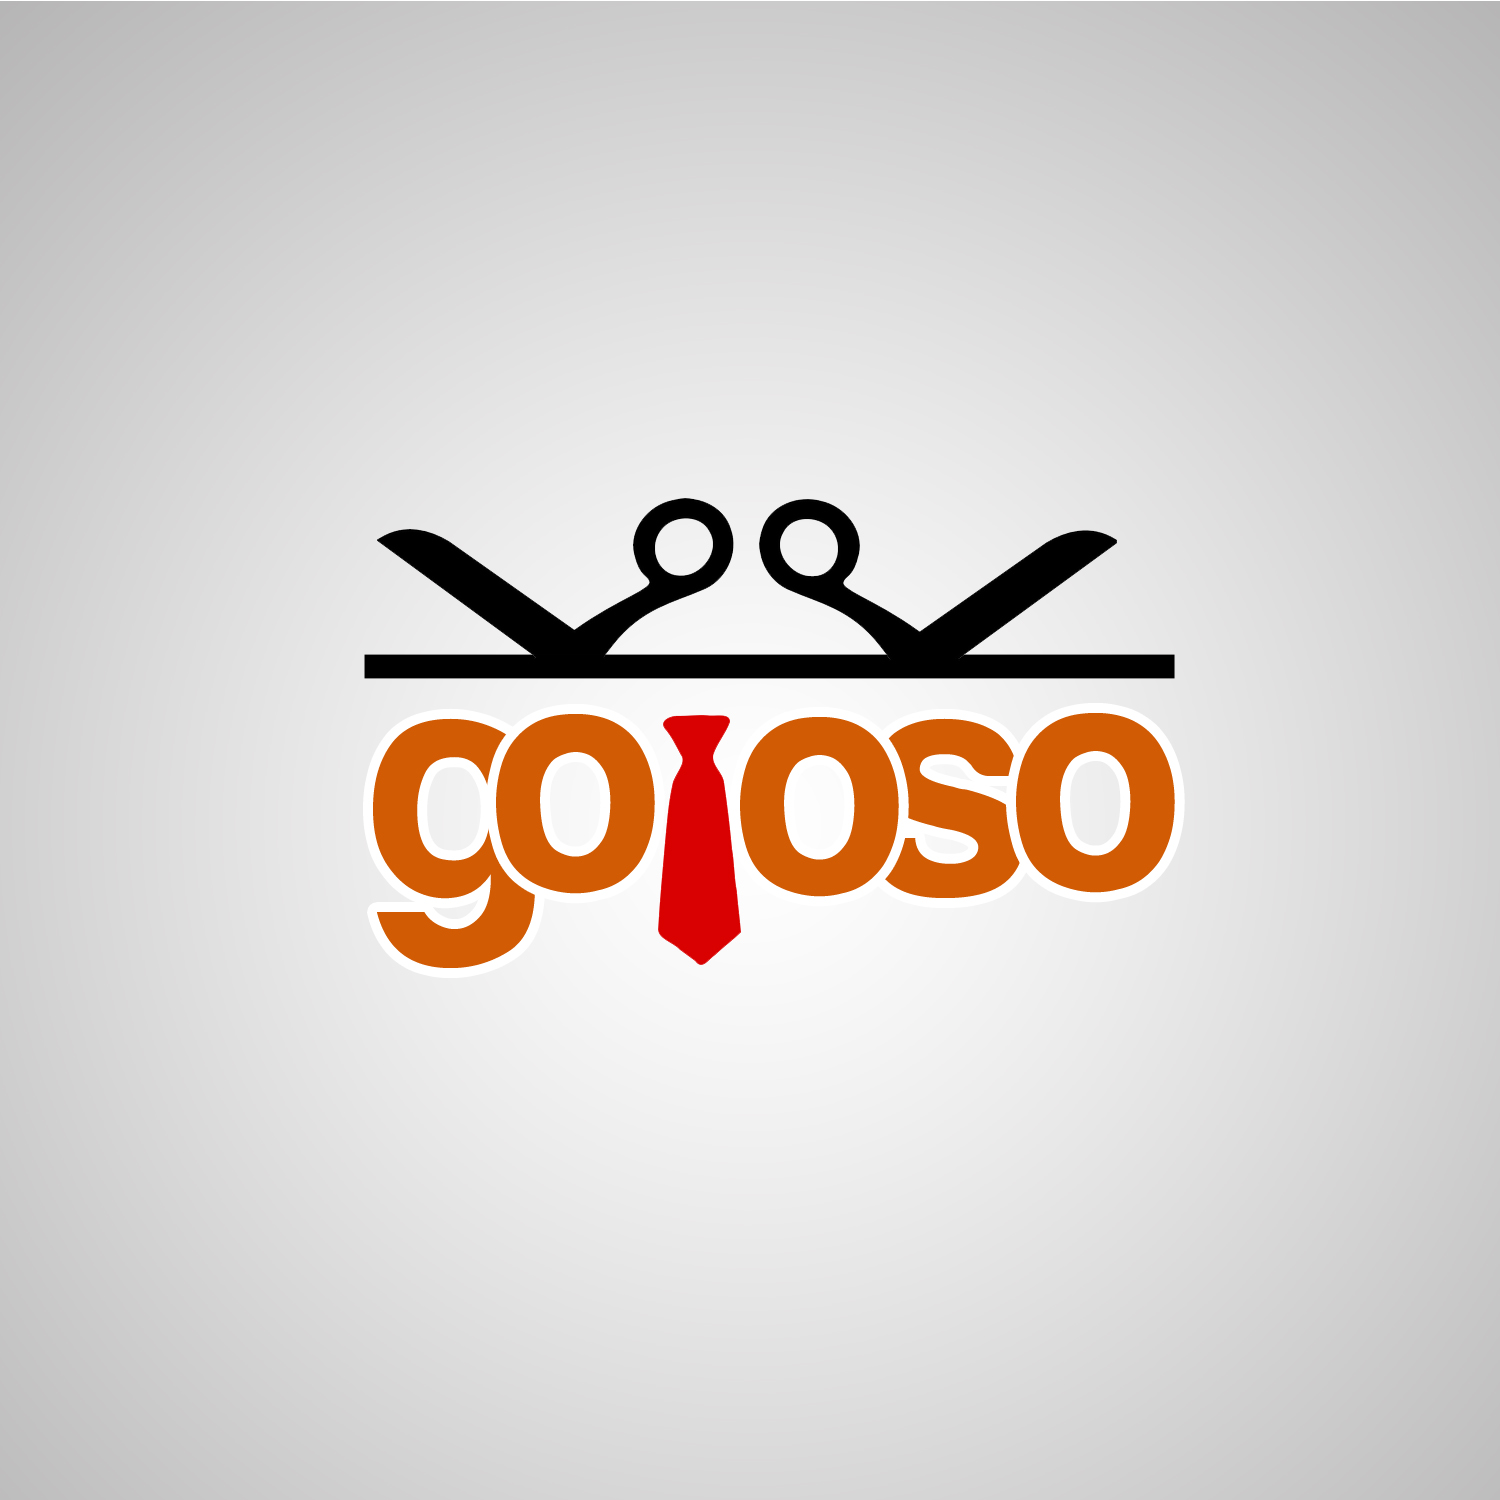 Logo Design by Joseph Neal Lacatan - Entry No. 180 in the Logo Design Contest Unique Logo Design Wanted for Goloso.